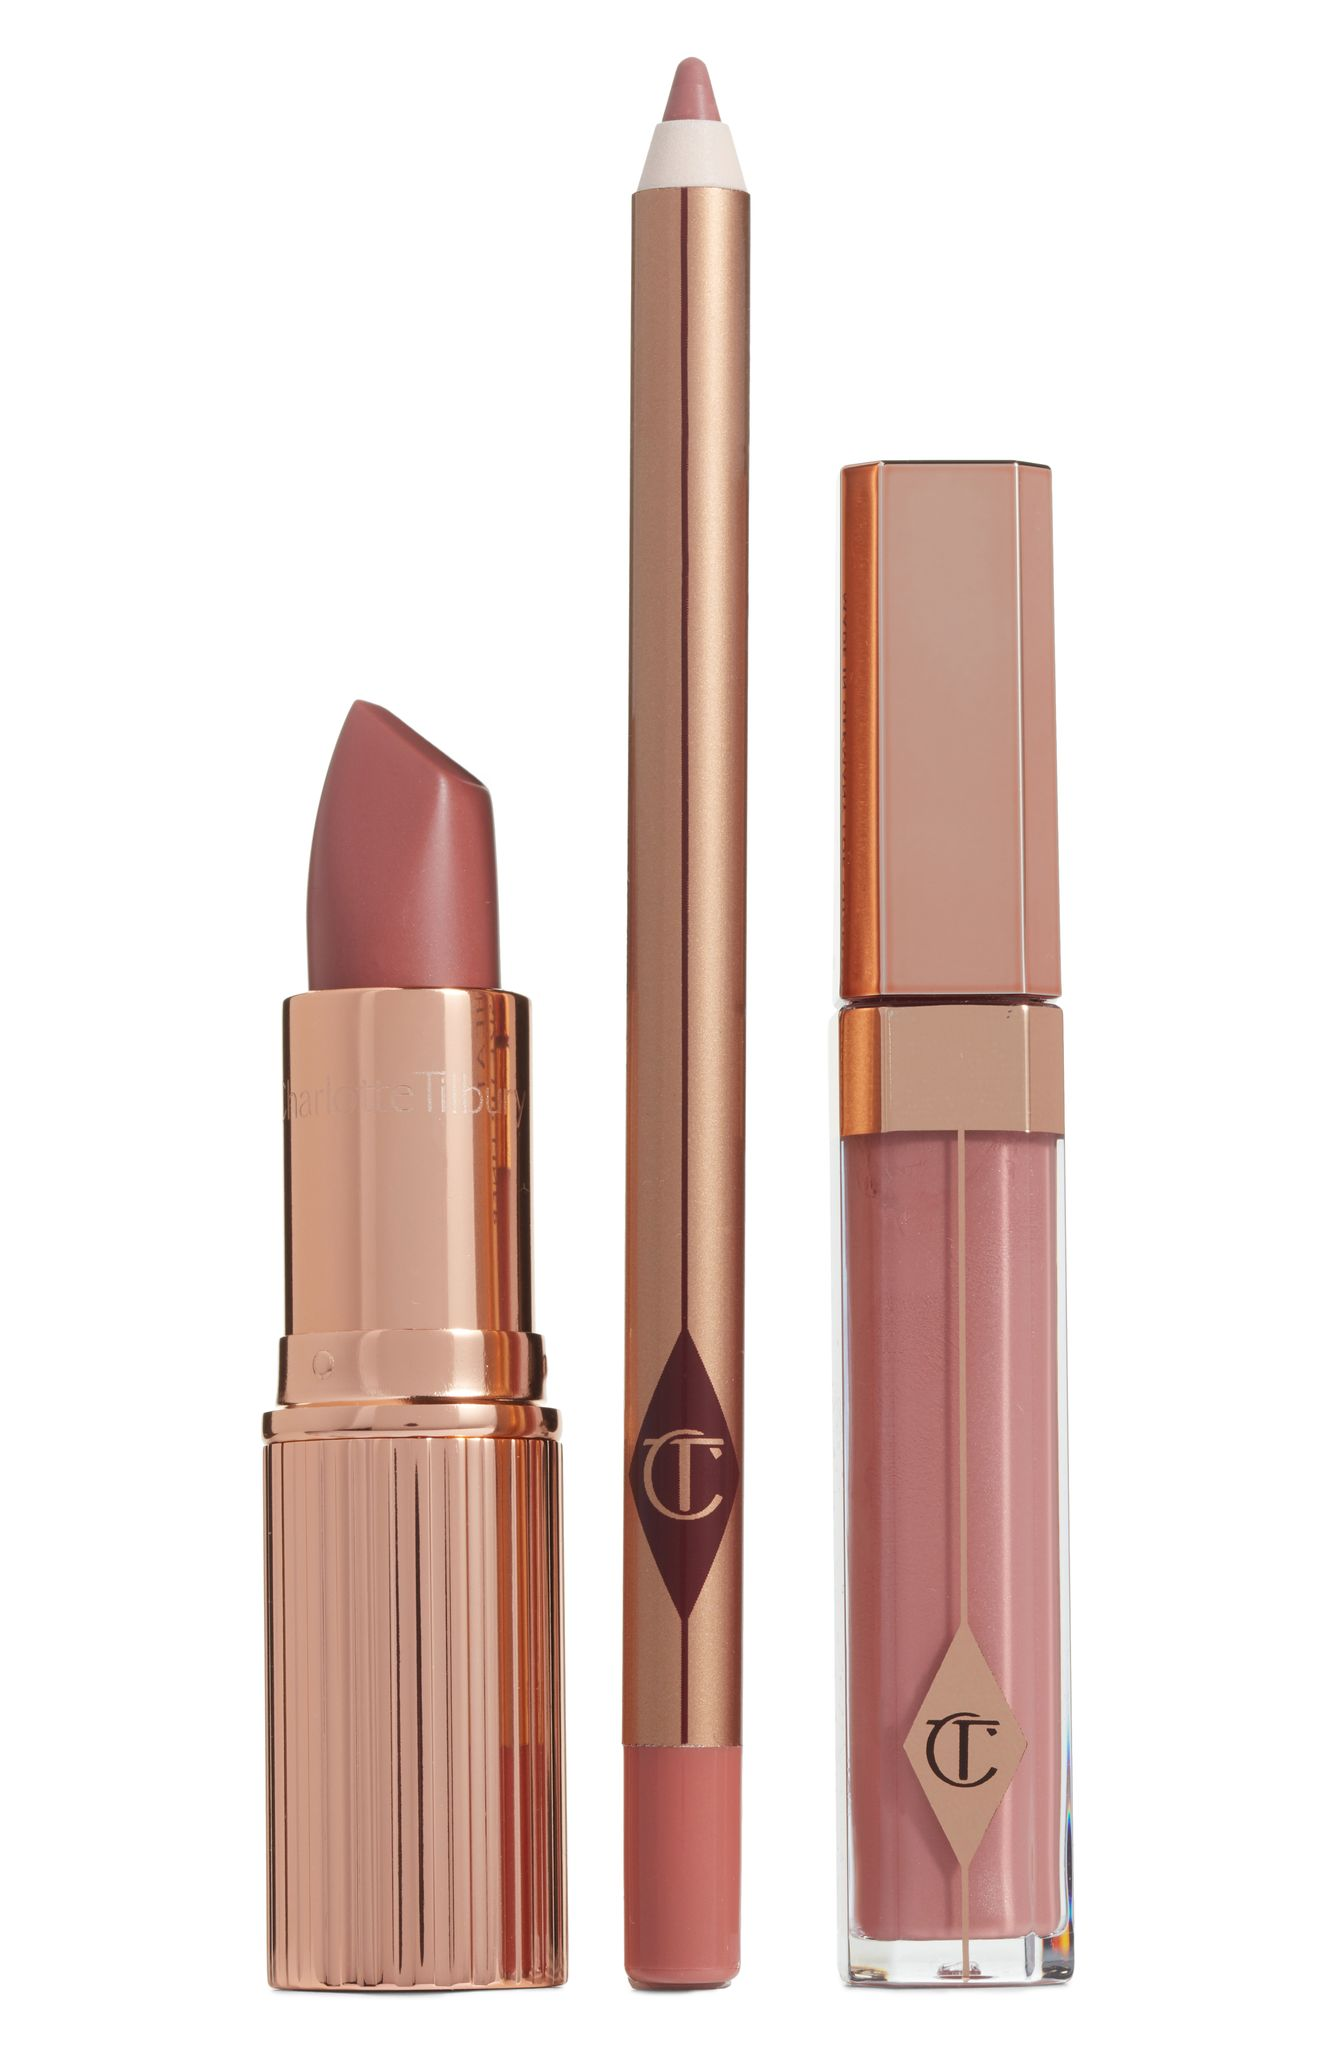 Charlotte Tilbury Pillow Talk Lip Set (normally $78): NOW $60 (Image: Nordstrom){ }